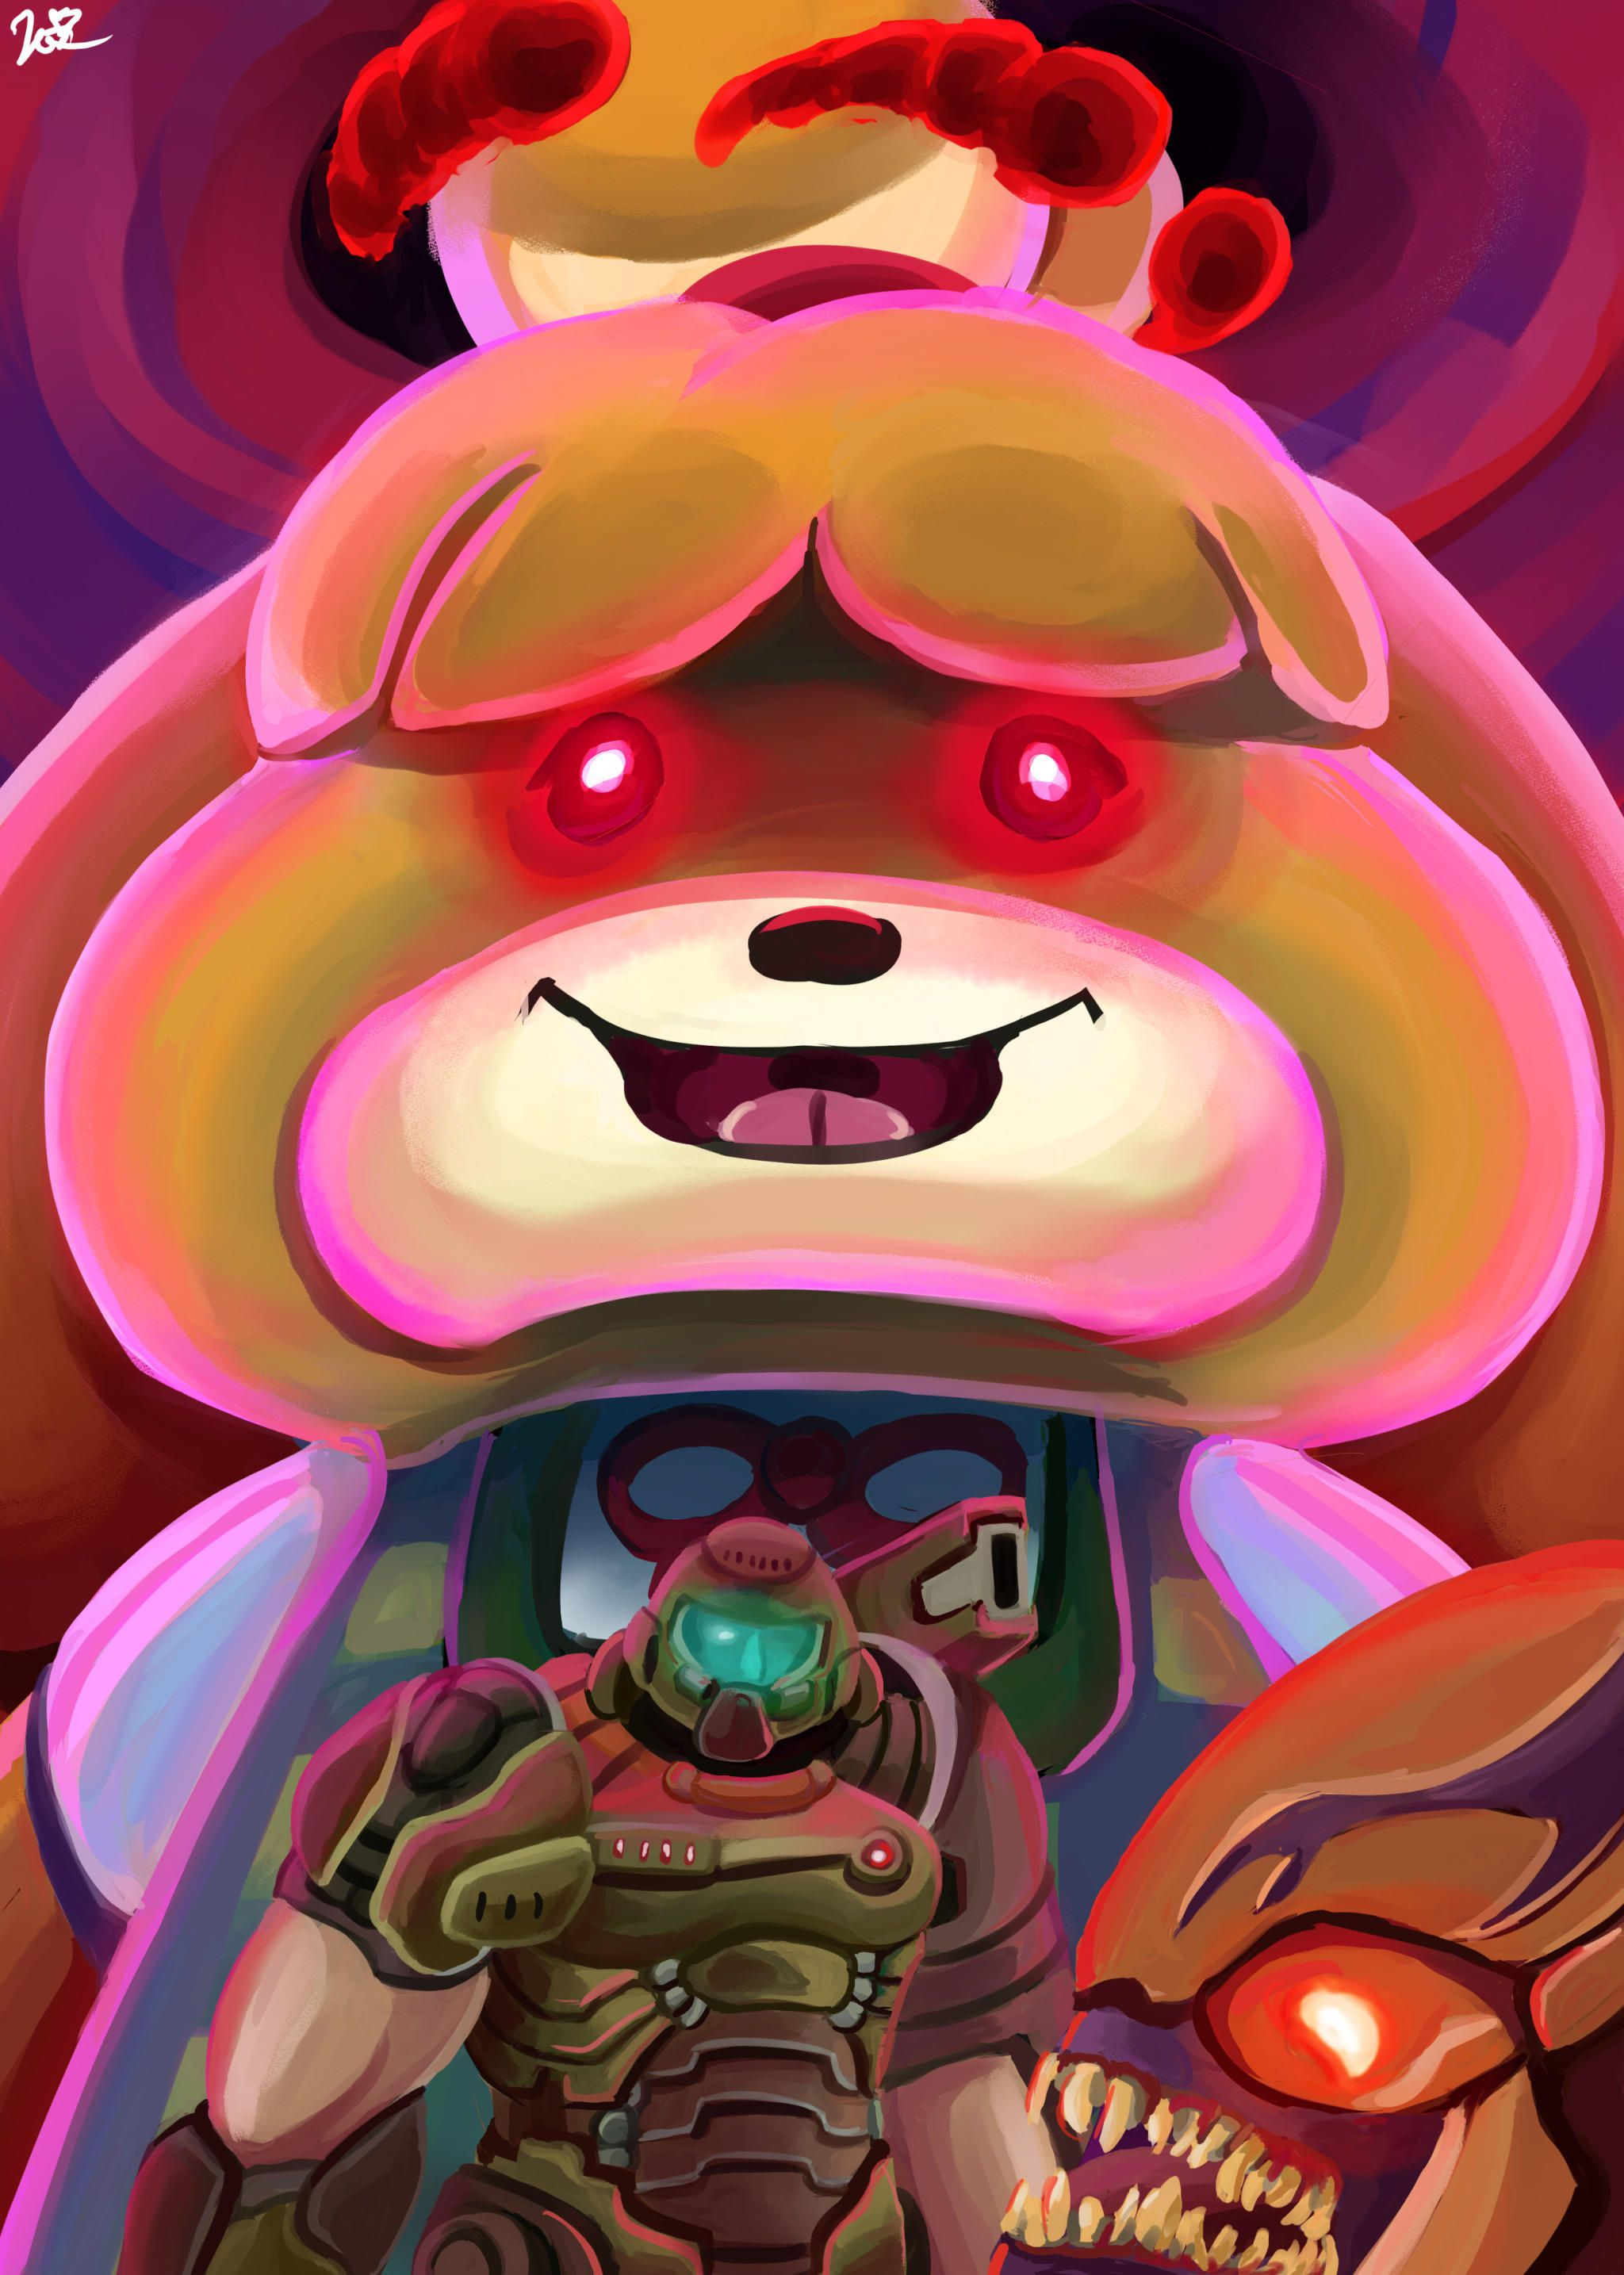 Dynamax isabelle Animal crossing funny, Rainbow six